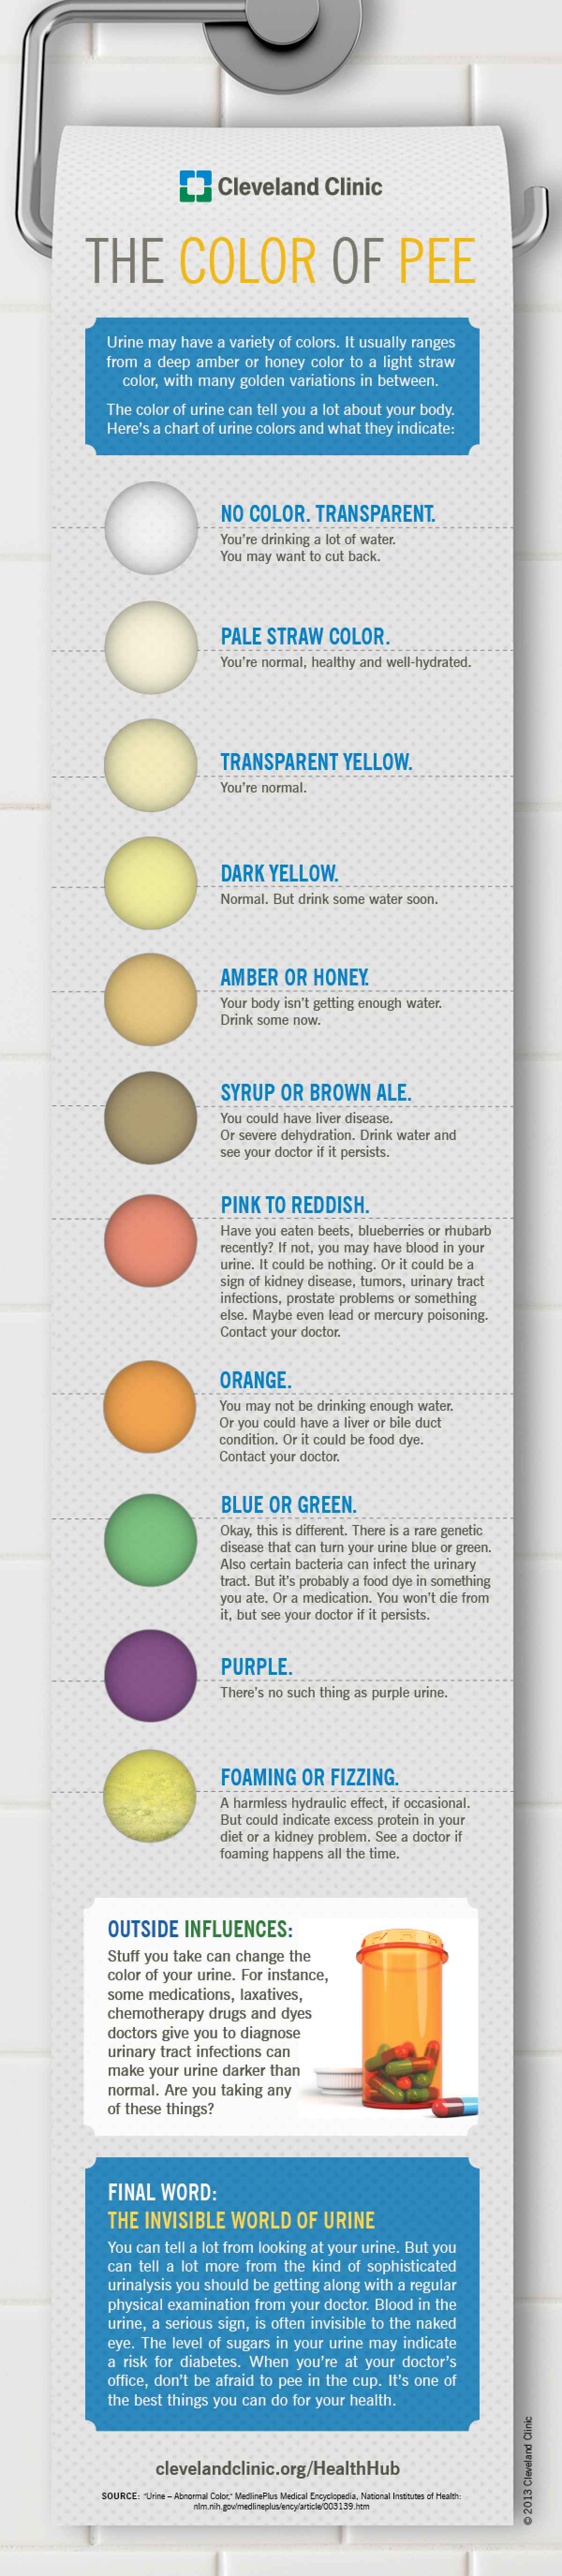 Here's What The Color of Your Urine Says About Your Health 1